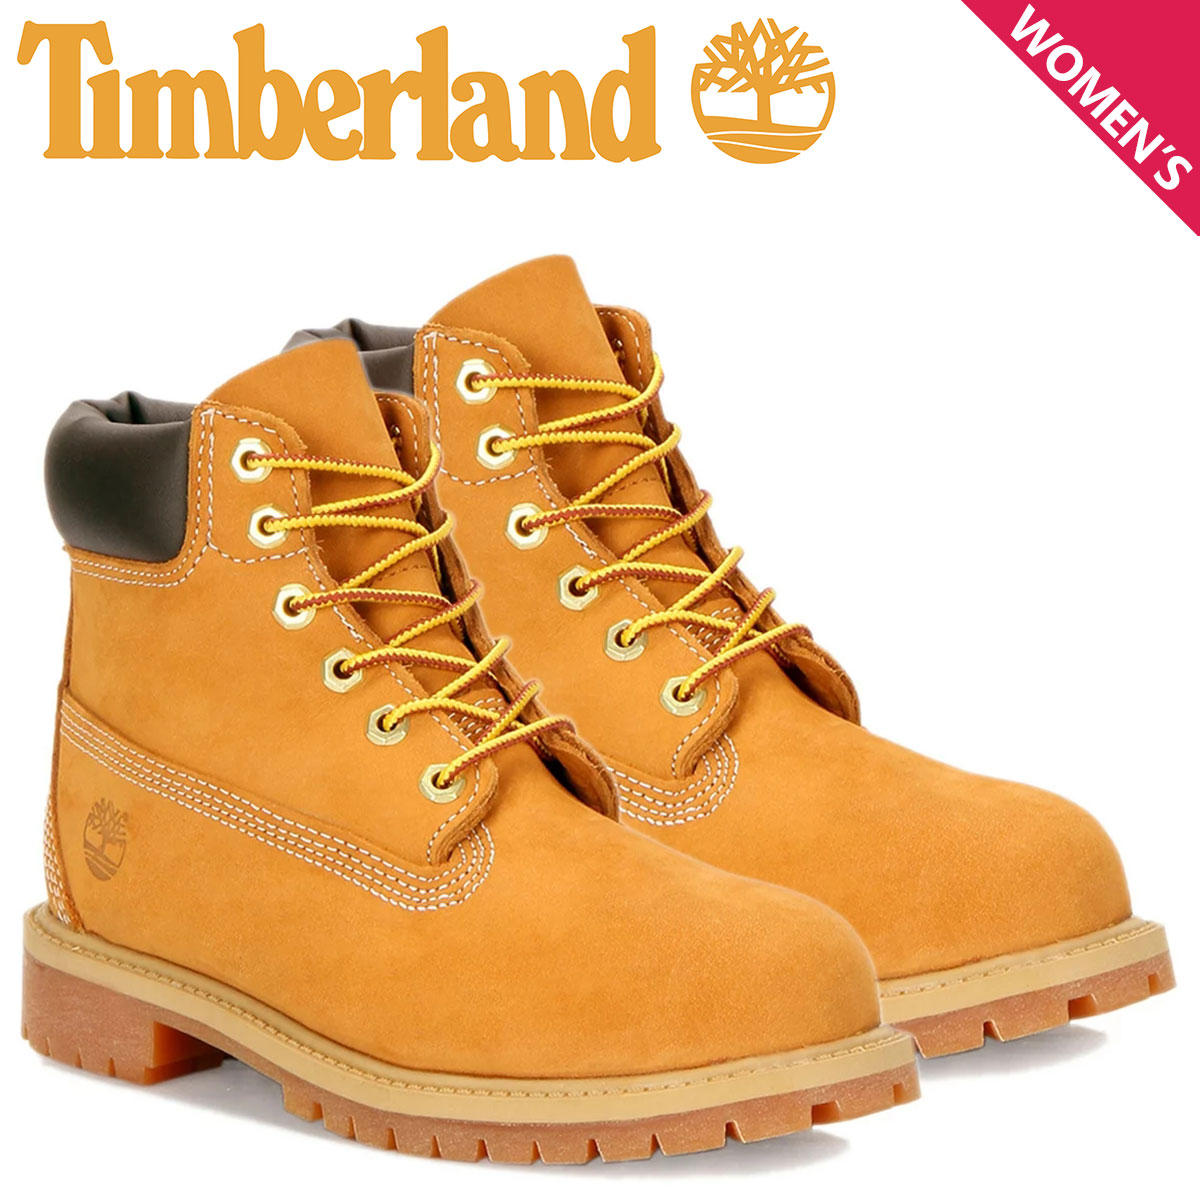 fdf9df44ca24 Timberland Timberland 6 inch premium boots 10361 6 INCH PREMIUM BOOT  leather junior kids child ladies